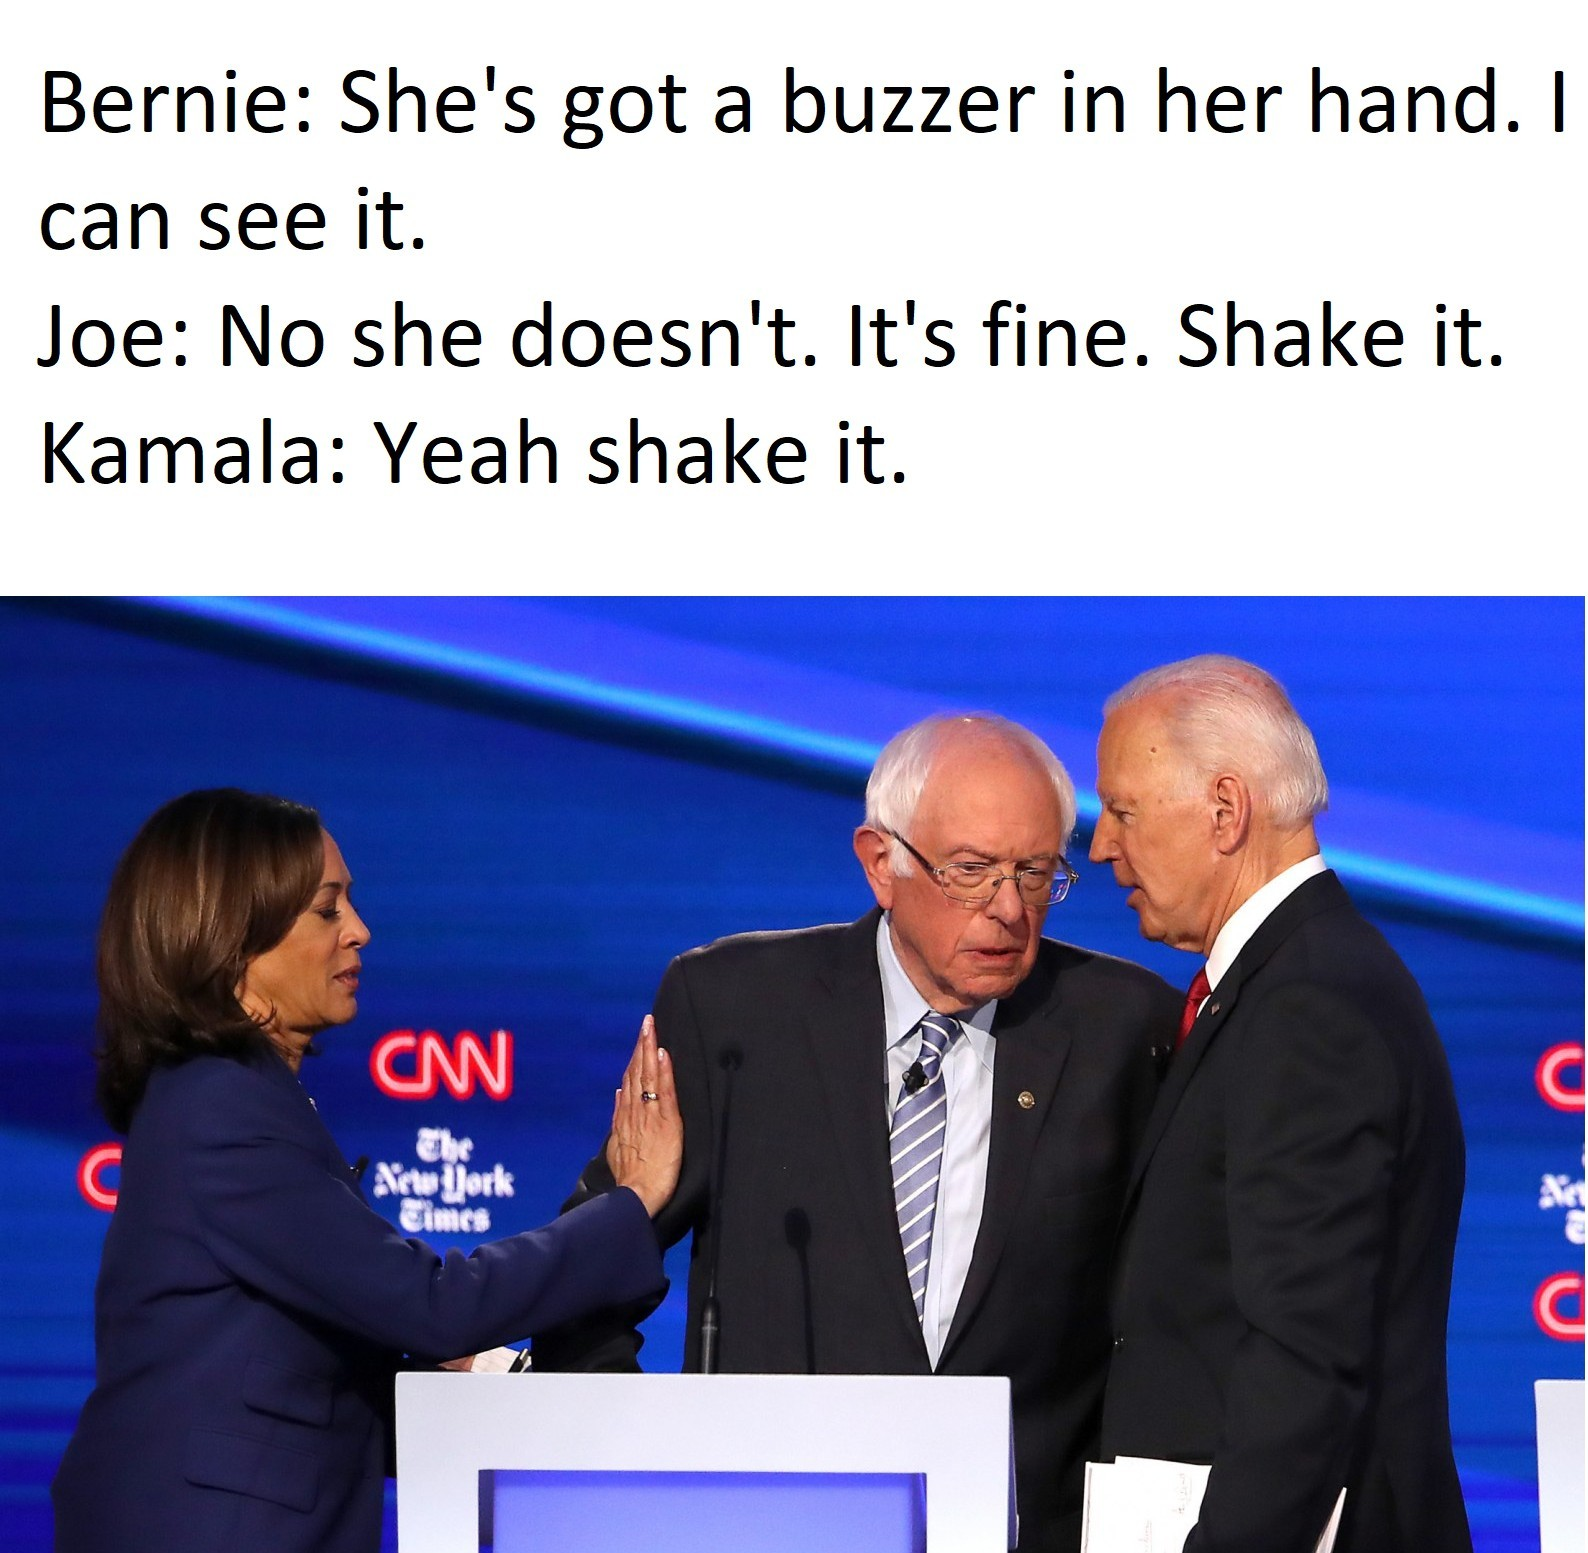 Kamala gonna bully em lmao - meme